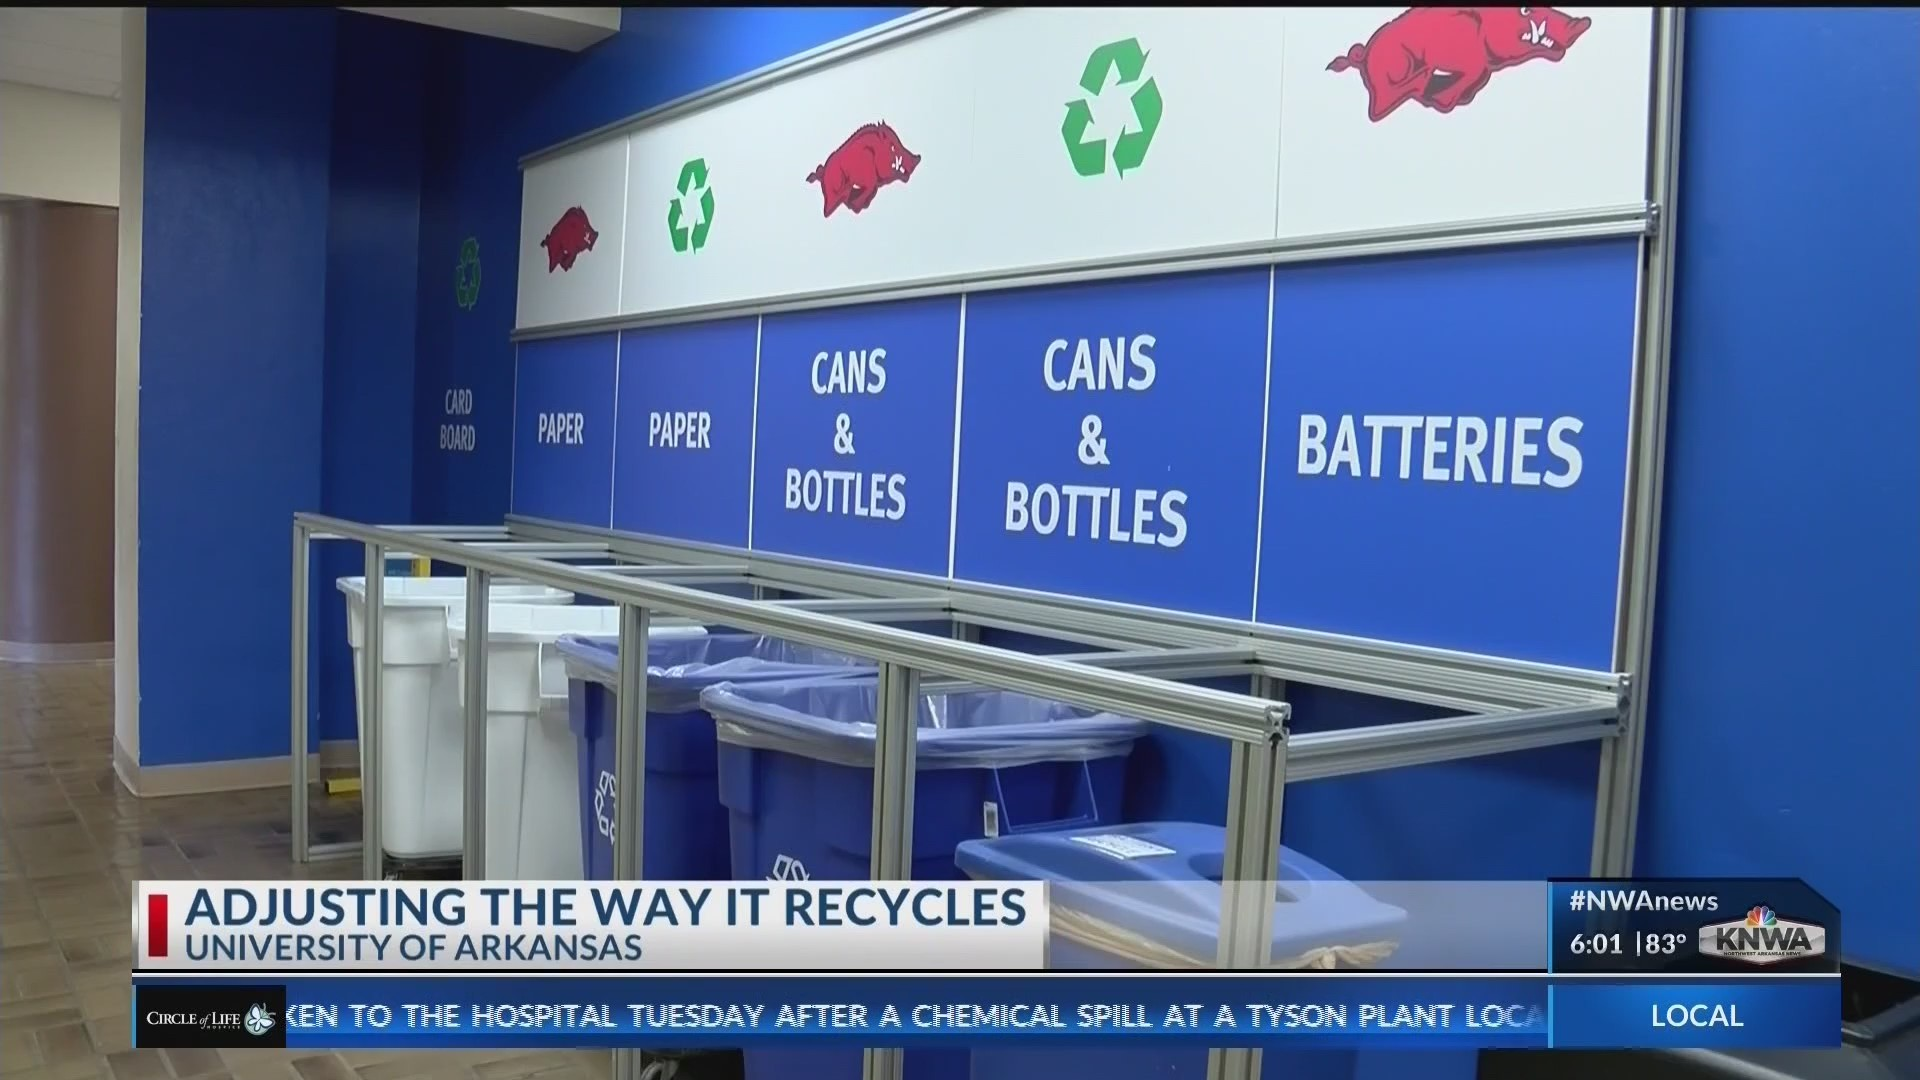 Large_amounts_of_UA_recyclables_going_to_0_20190619001211